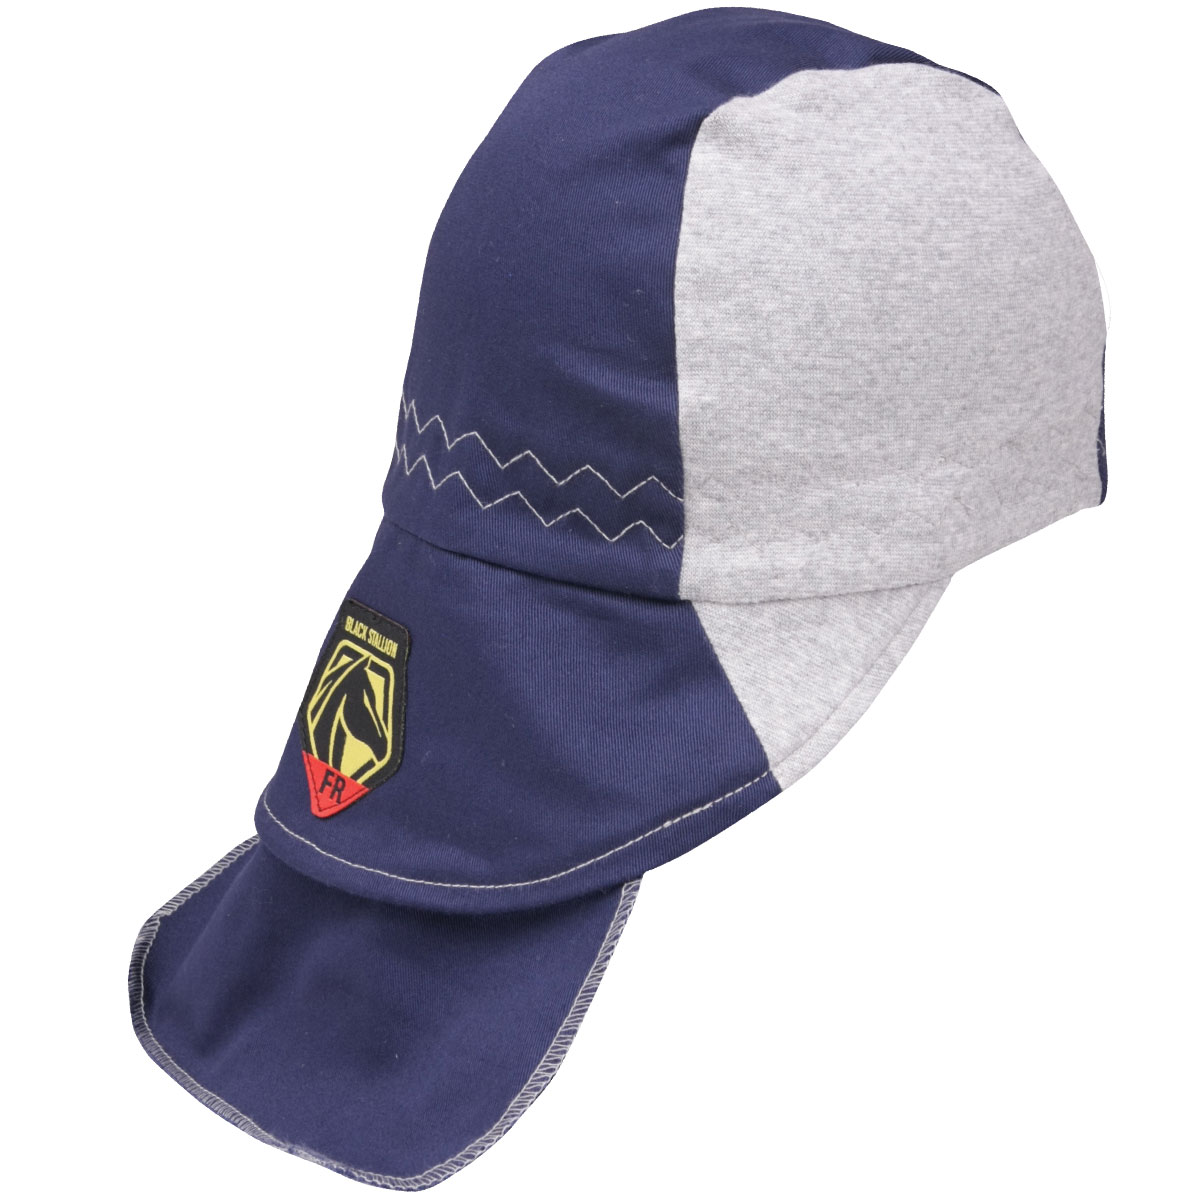 FR Cotton Welding Cap with Hidden Bill Extension, Navy/Gray #AH1630-NG